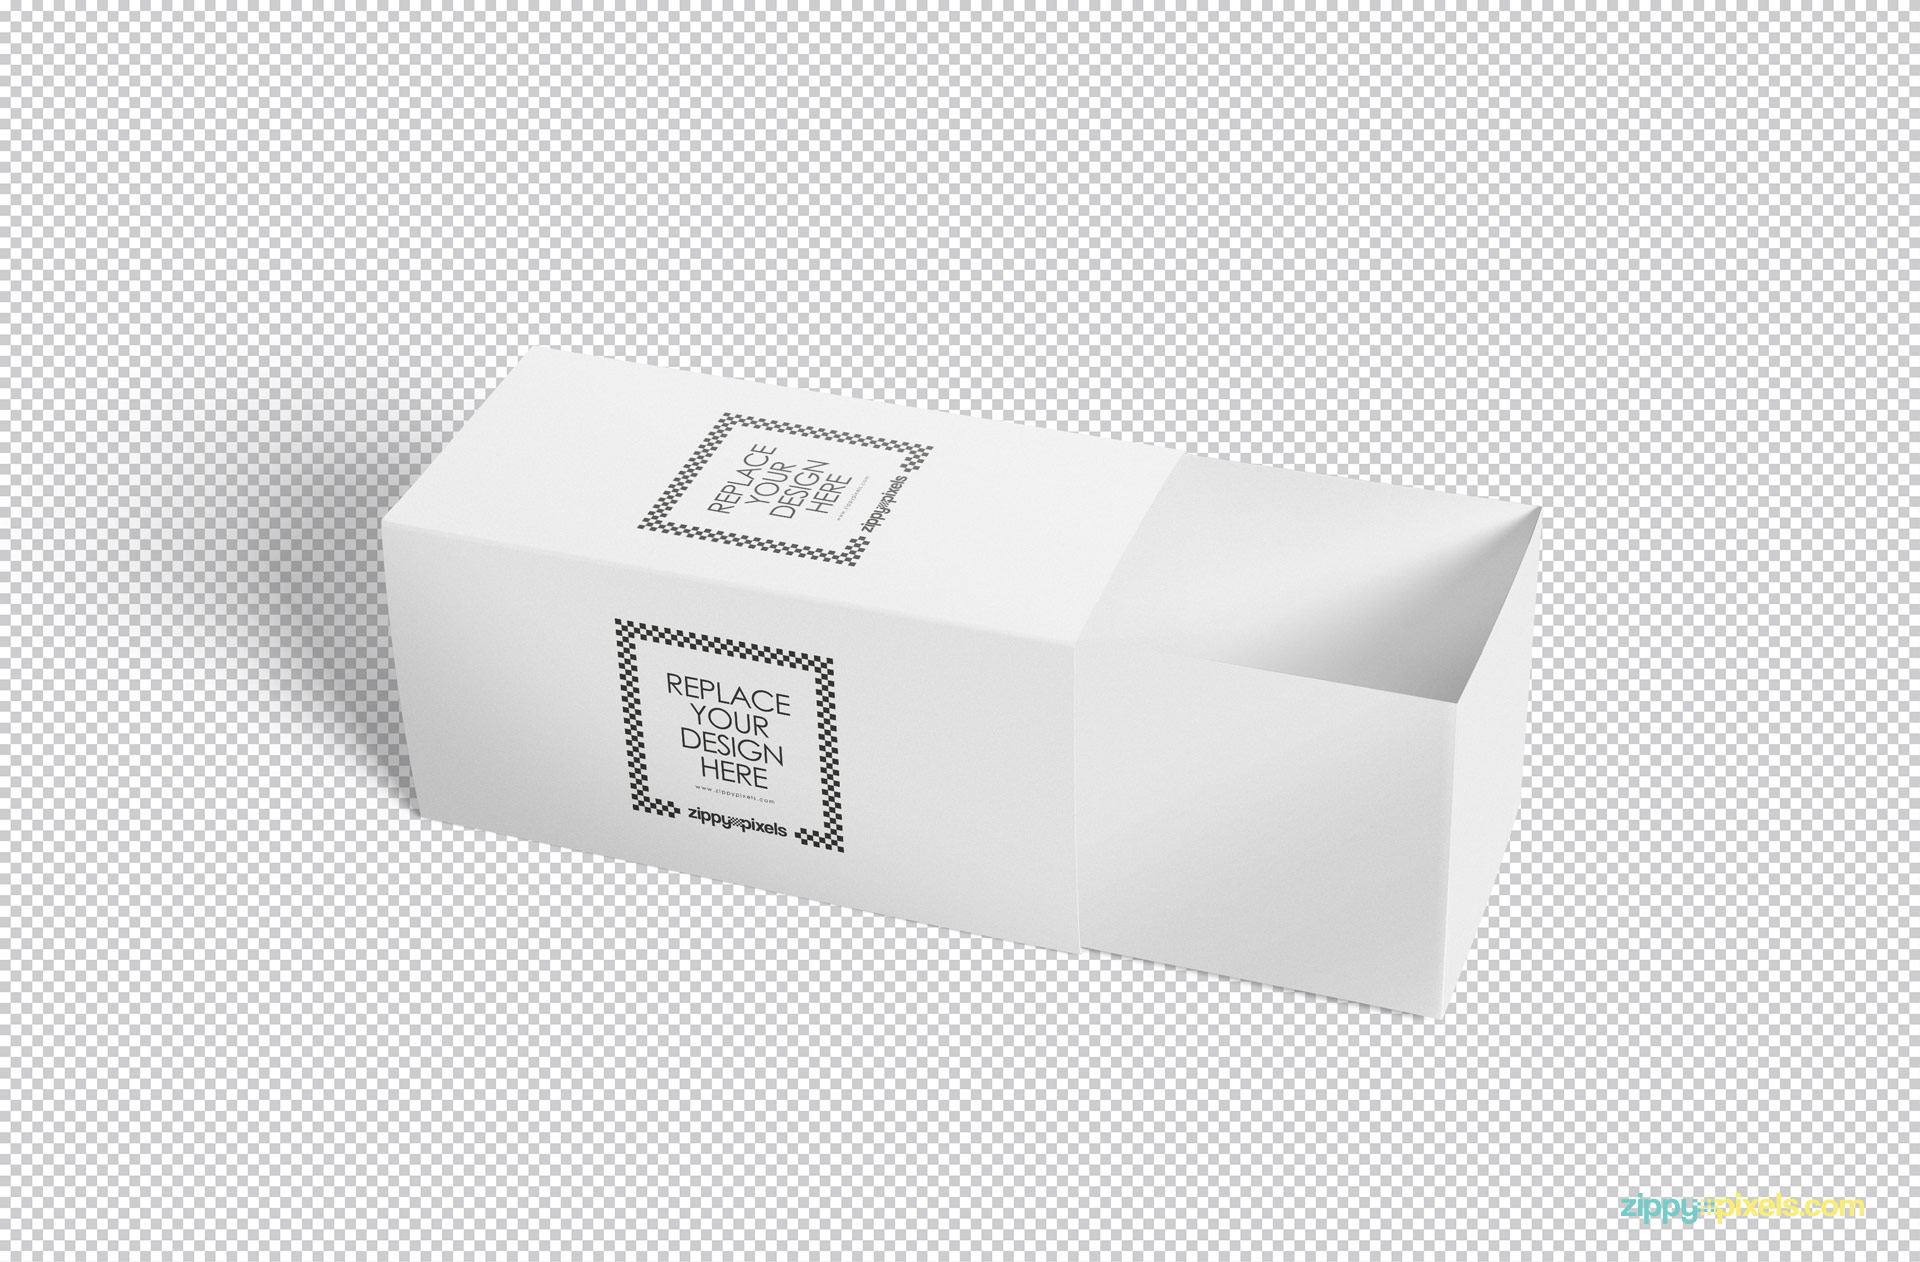 Plain white sliding box mockup holding ability to edit every element in adobe Photoshop.